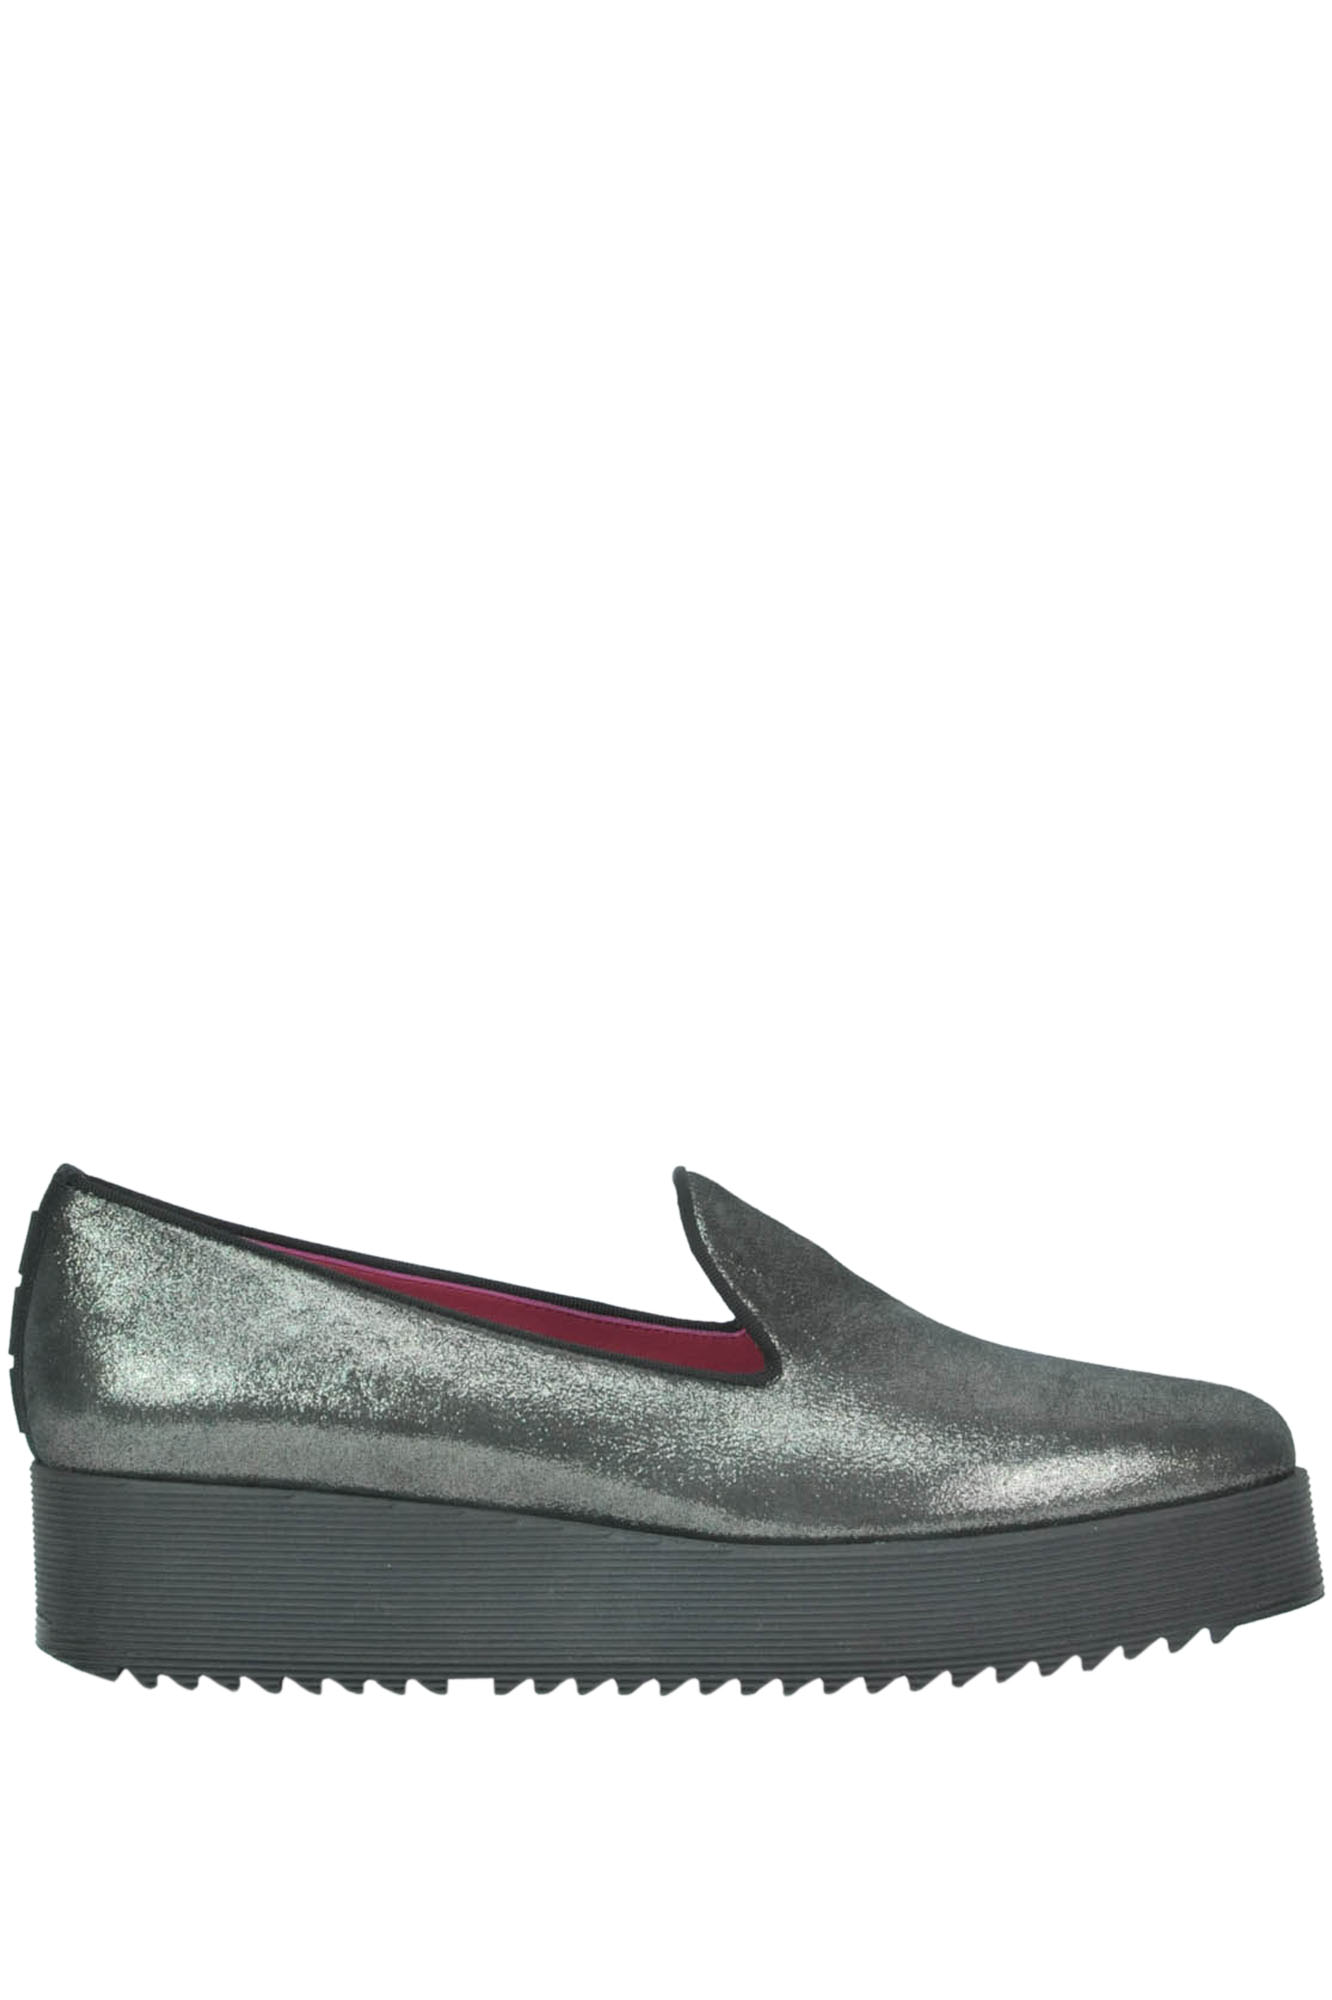 Image of Scarpe slip-on glitterate